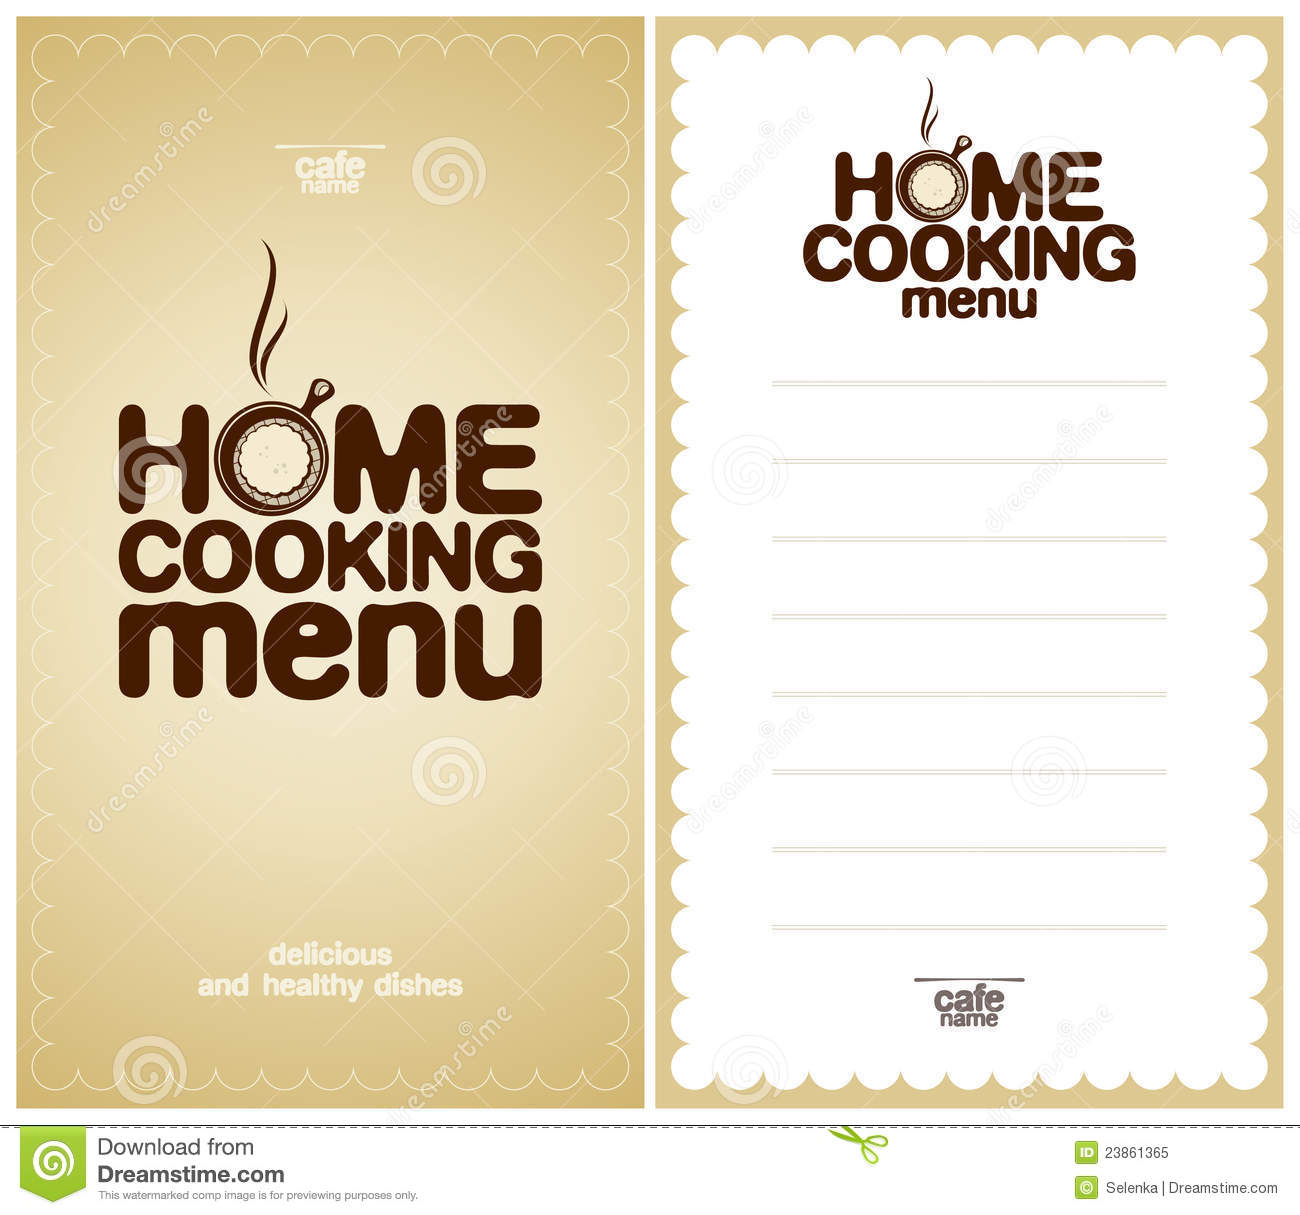 home cooking menu design template royalty free stock photo